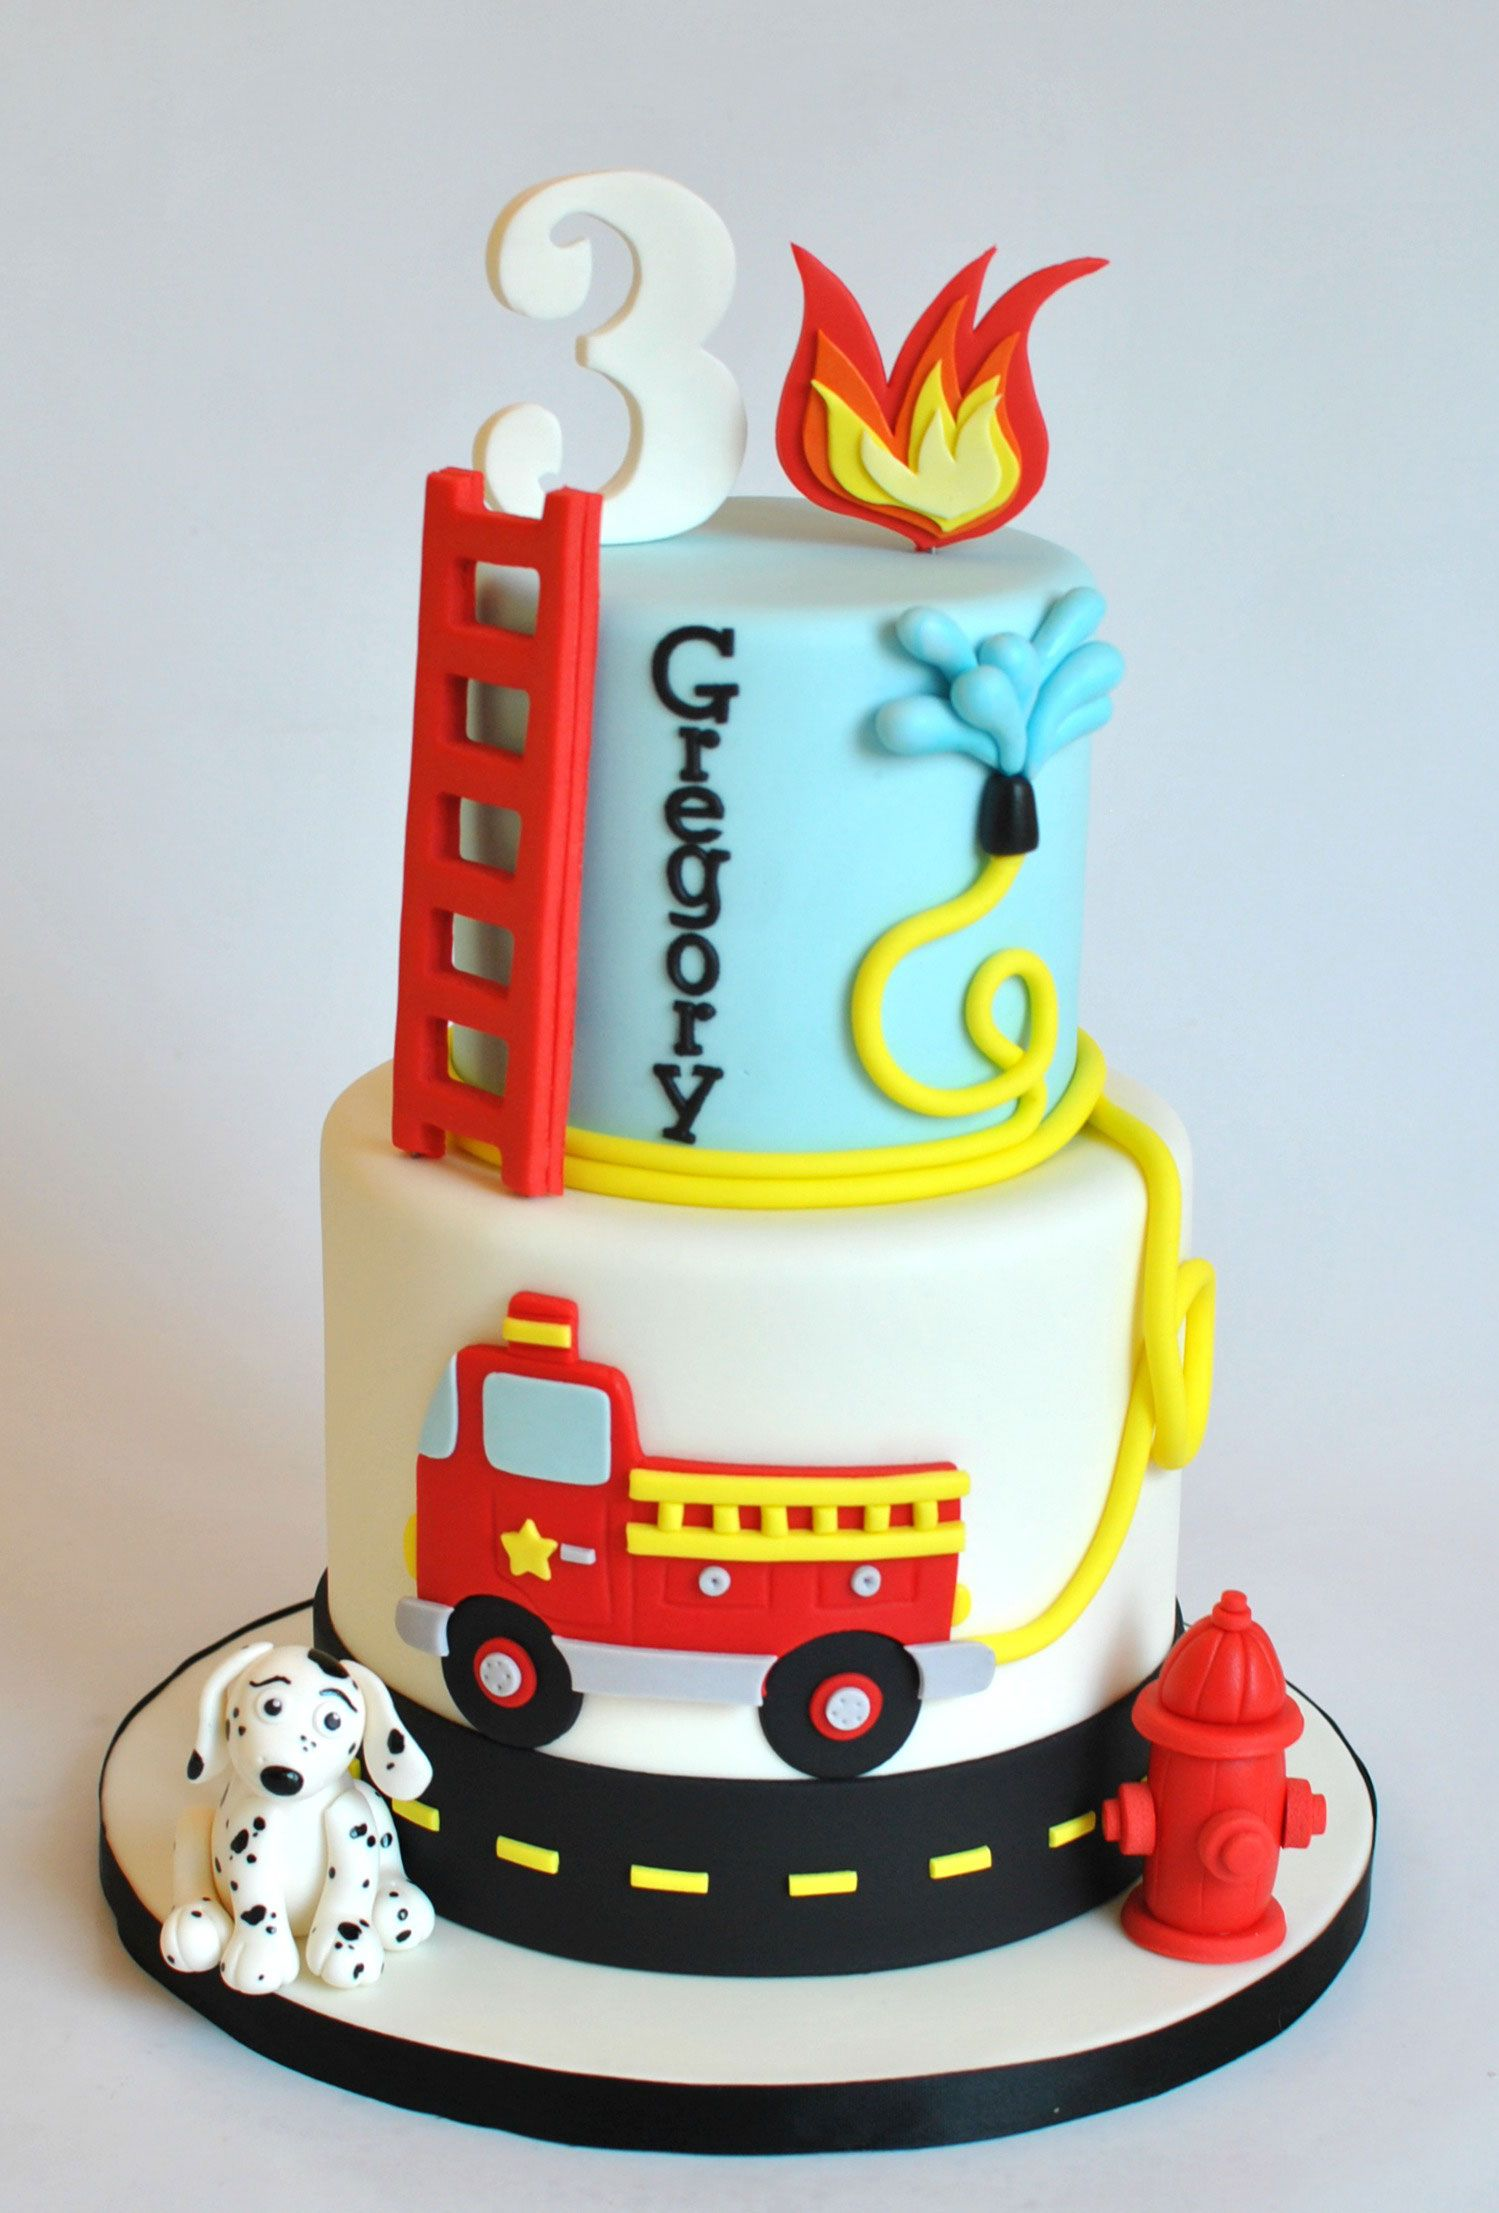 Firetruck Cake Hope S Sweet Cakes Edible Works Of Art With